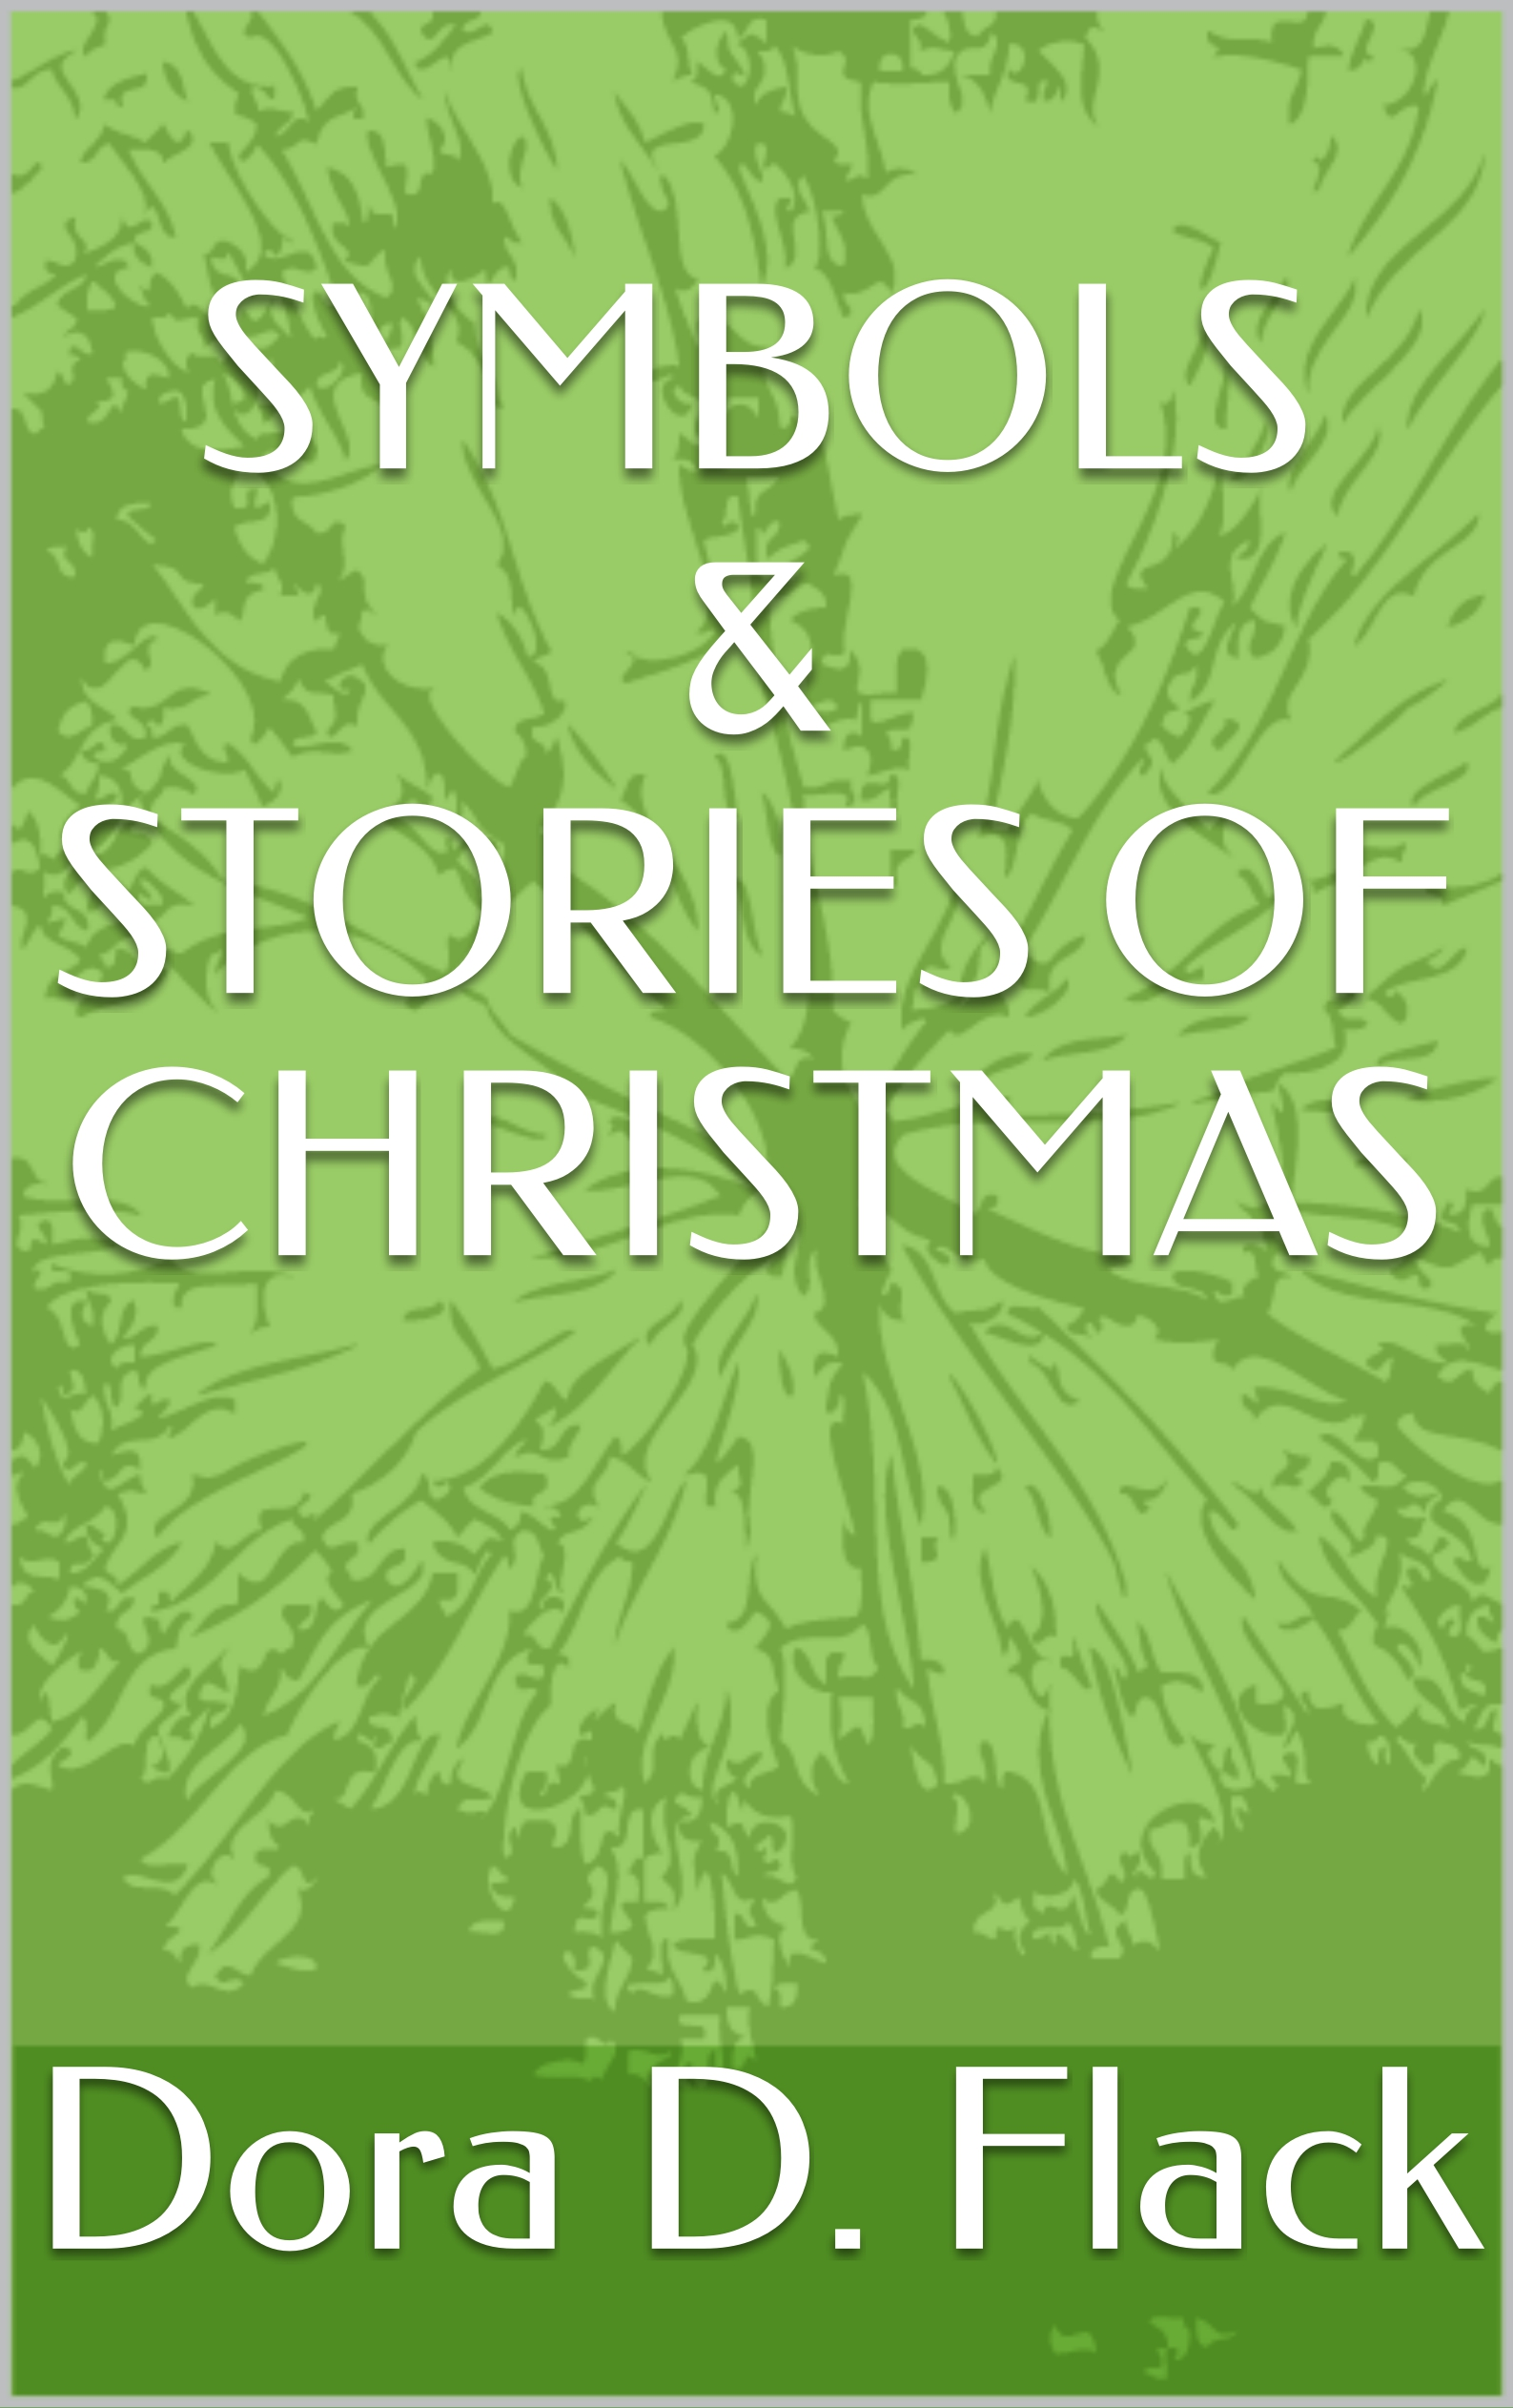 Symbols & Stories of Christmas book cover